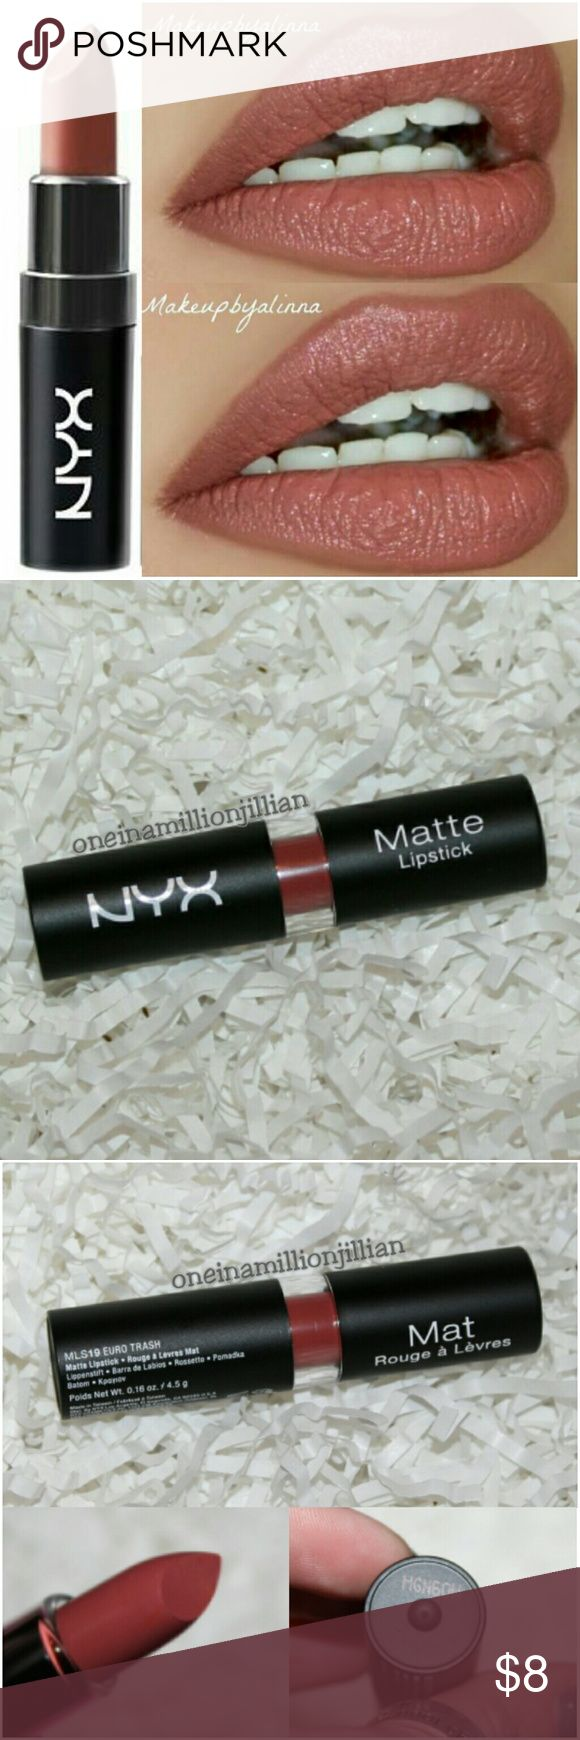 🎀 NYX Matte Lipstick - Euro Trash New - Never Used (Swatch from Google)  Full Sz & Authentic  Color: Euro Trash (dark pink brown) ☆ MAC Velvet Teddy Dupe ☆  NYX Matte Lipstick is a highly pigmented lipstick that glides on smoothly & stays put. Velvety non-glossy, high-fashion matte finish envelops lips in rich color.  Check out my page for more great items & discounts. #oneinamillionjillian NYX Makeup Lipstick